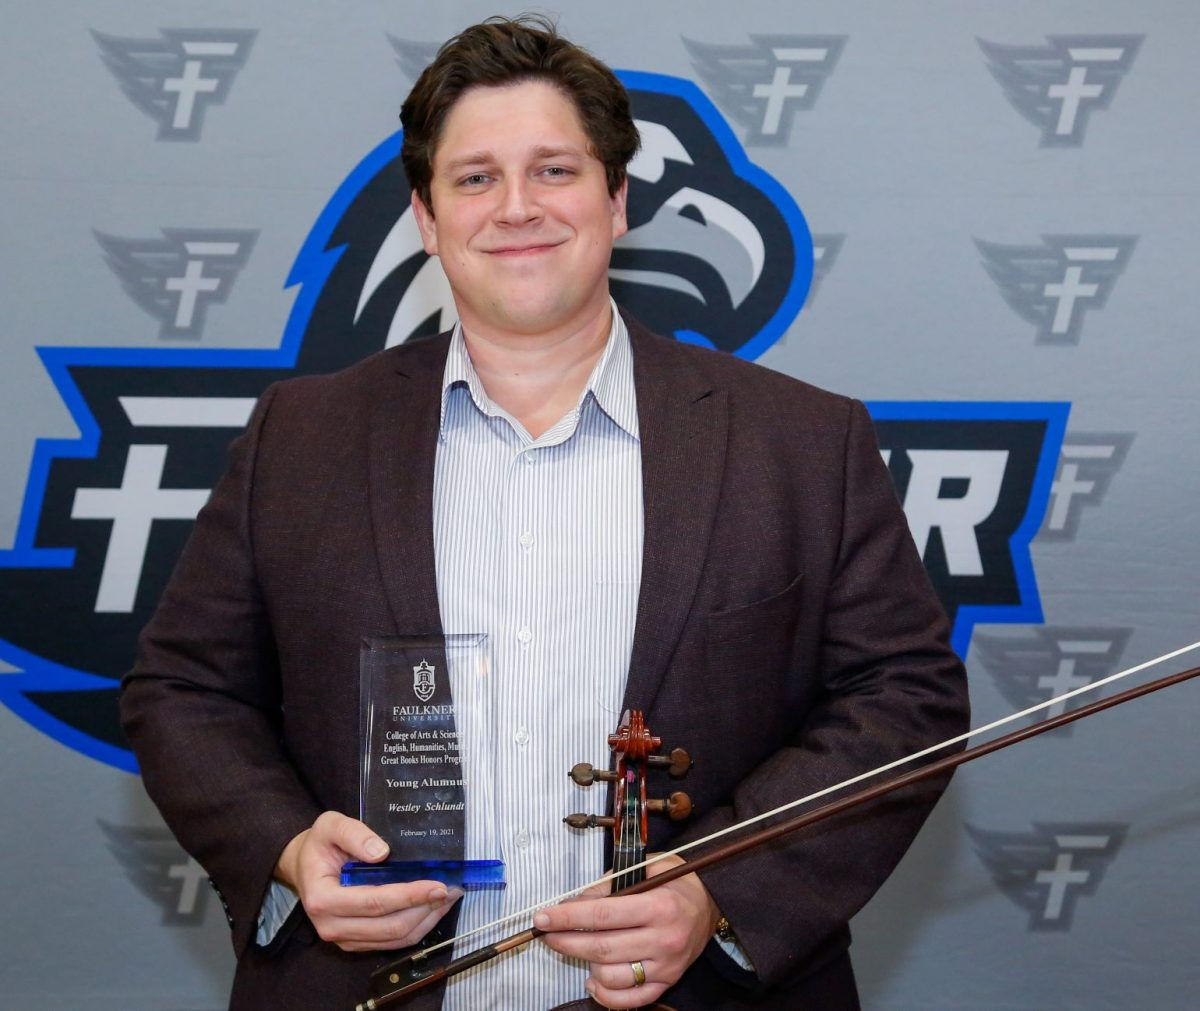 Westley Schlundt holds his violin and award. As a musician, he was honored as the Faulkner Young Alumnus for the Music Department.